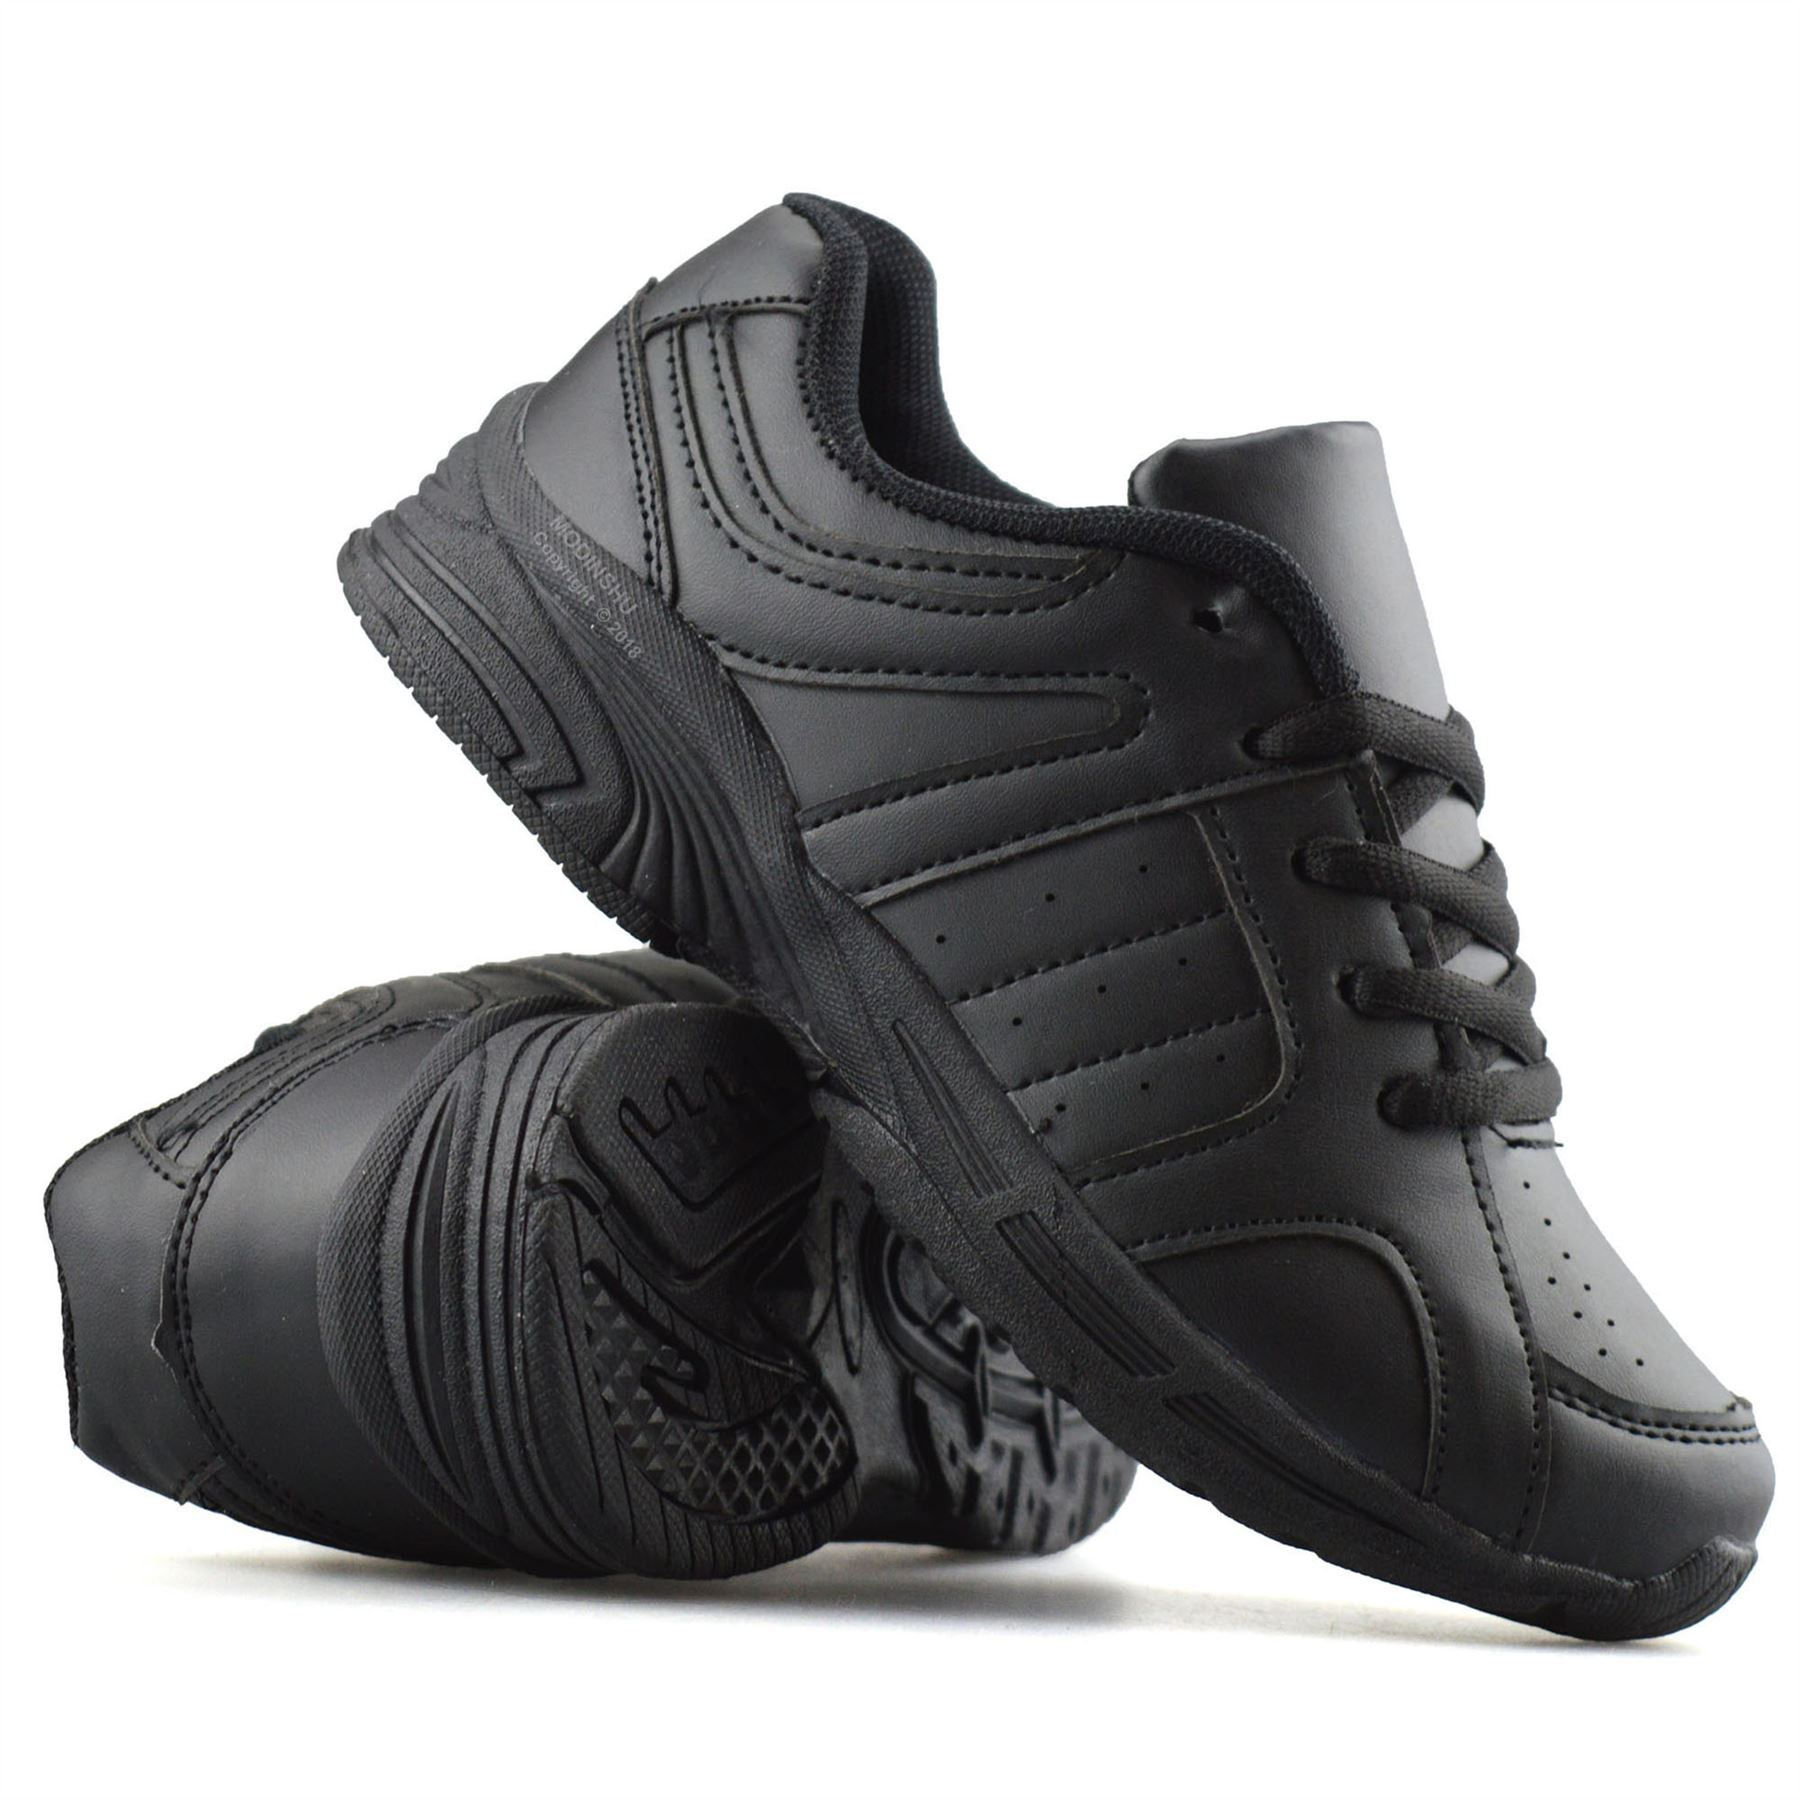 Boys-Kids-Casual-Smart-Formal-Lace-Up-Back-To-School-Sports-Trainers-Shoes-Size thumbnail 12